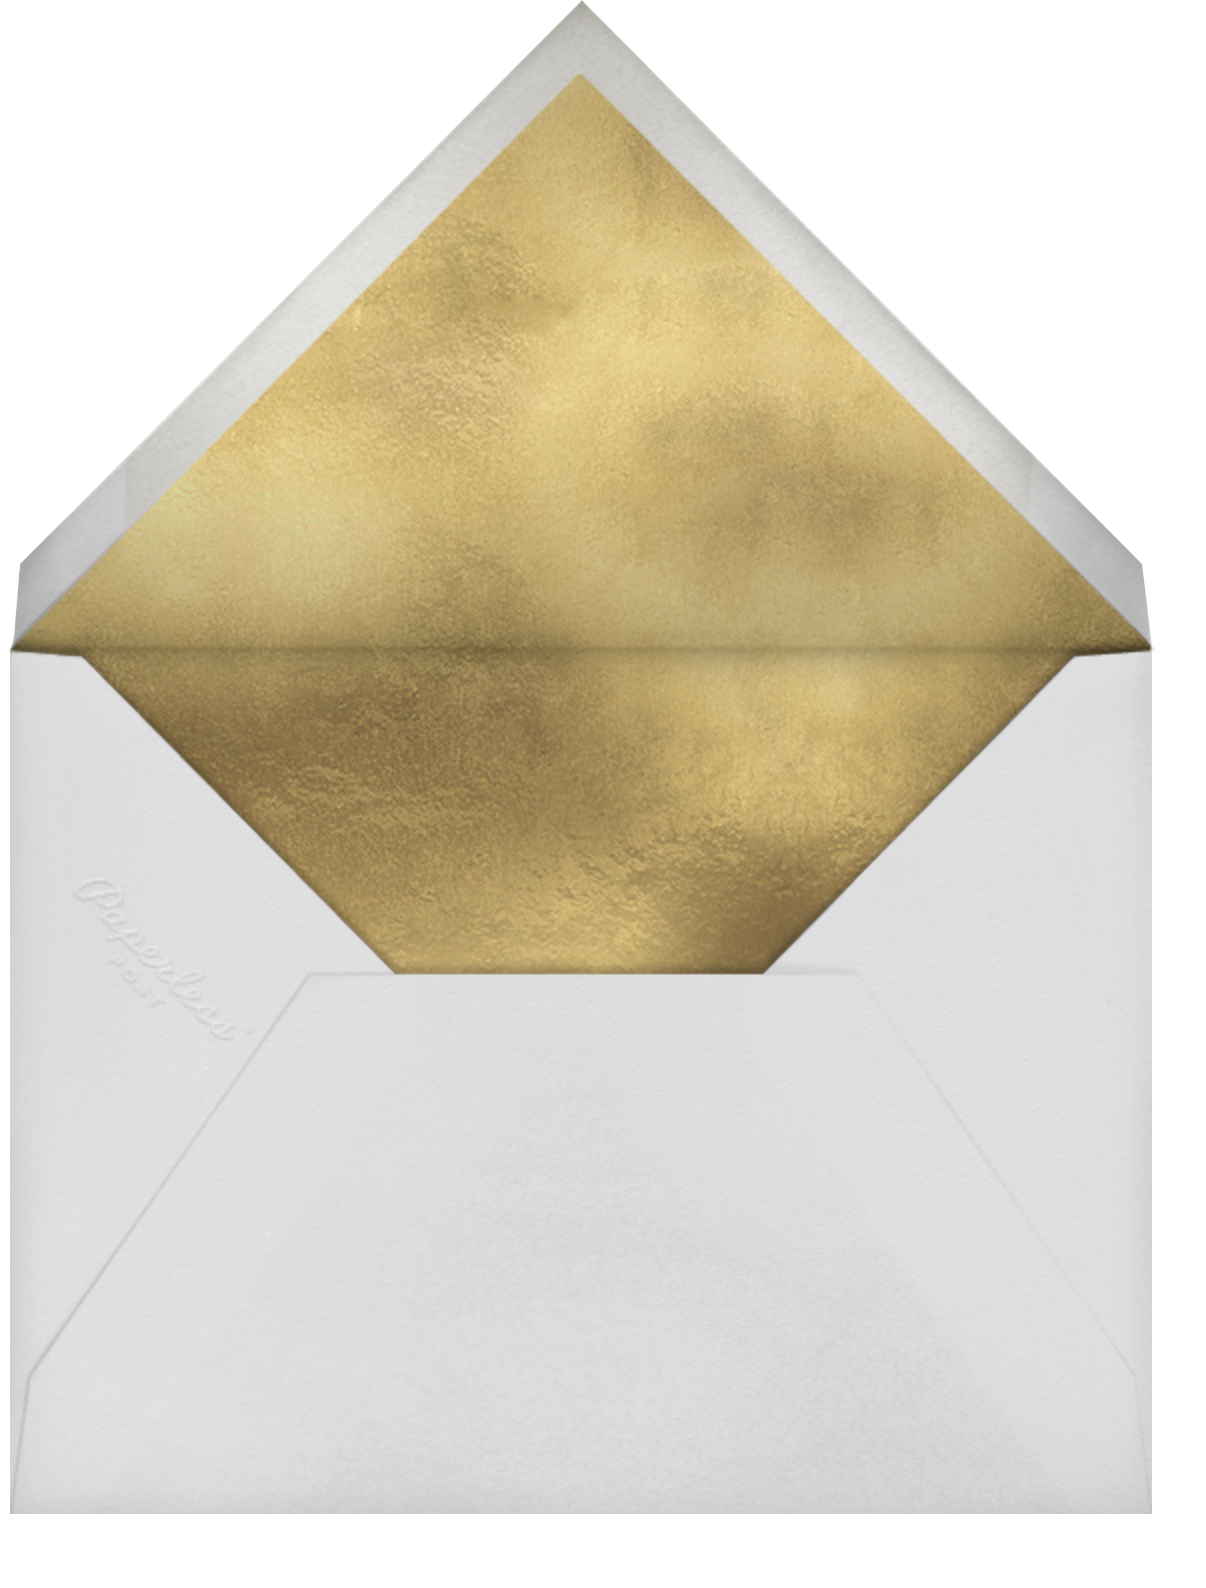 Belle Boulevard (Save the Date) - Gold - kate spade new york - Save the date - envelope back